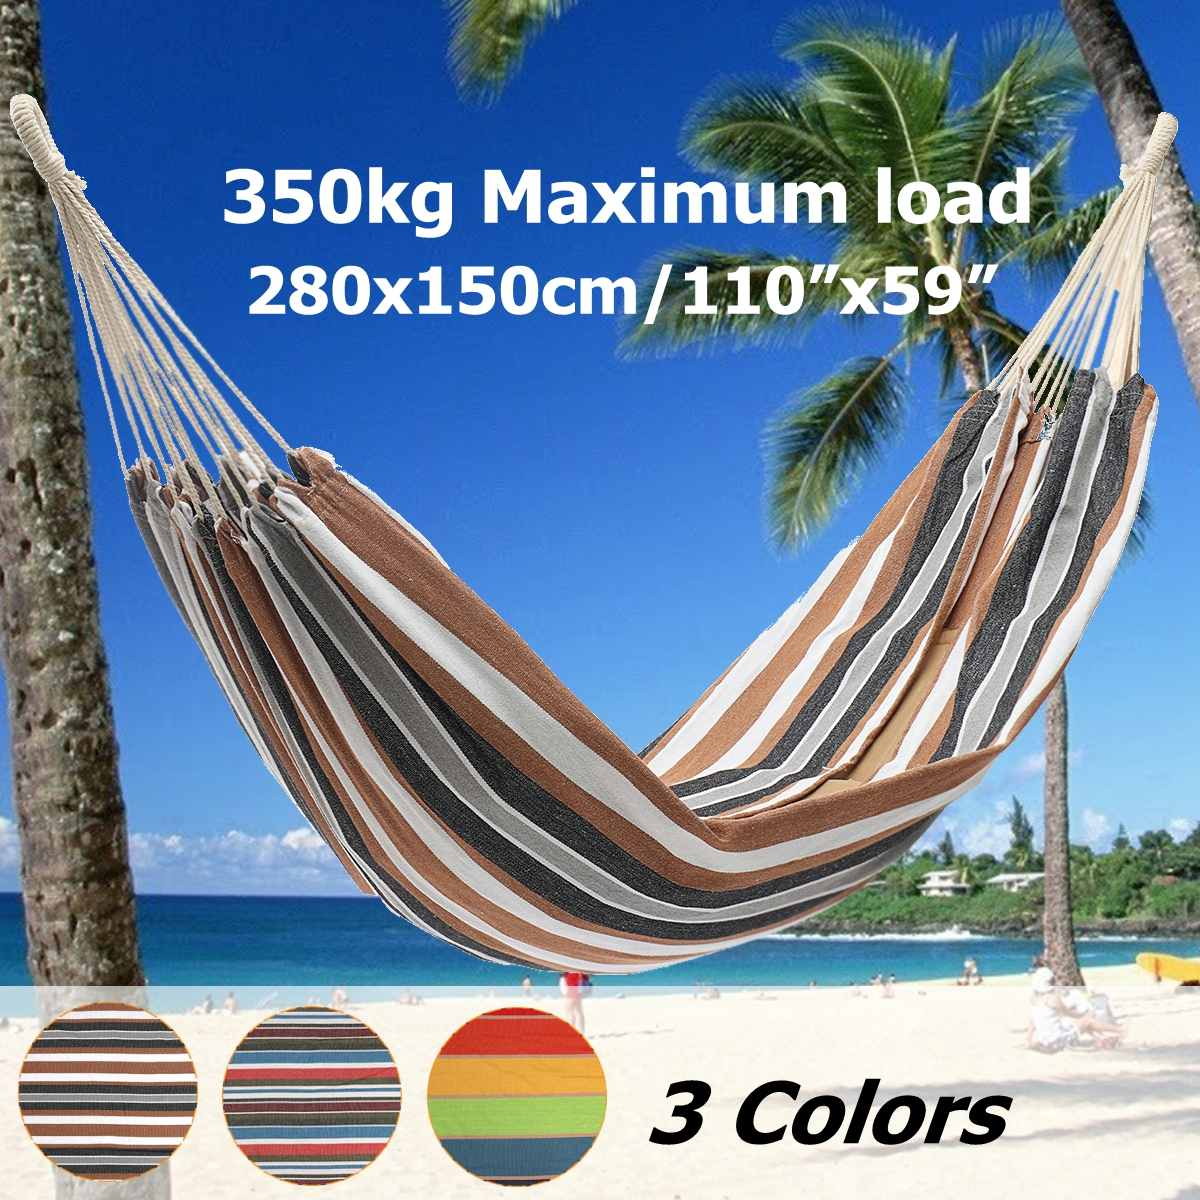 200x150 cm Parachute Double Hammock Swing Hanging Camping Travel Portable Swing Bed Max Load 350kg200x150 cm Parachute Double Hammock Swing Hanging Camping Travel Portable Swing Bed Max Load 350kg